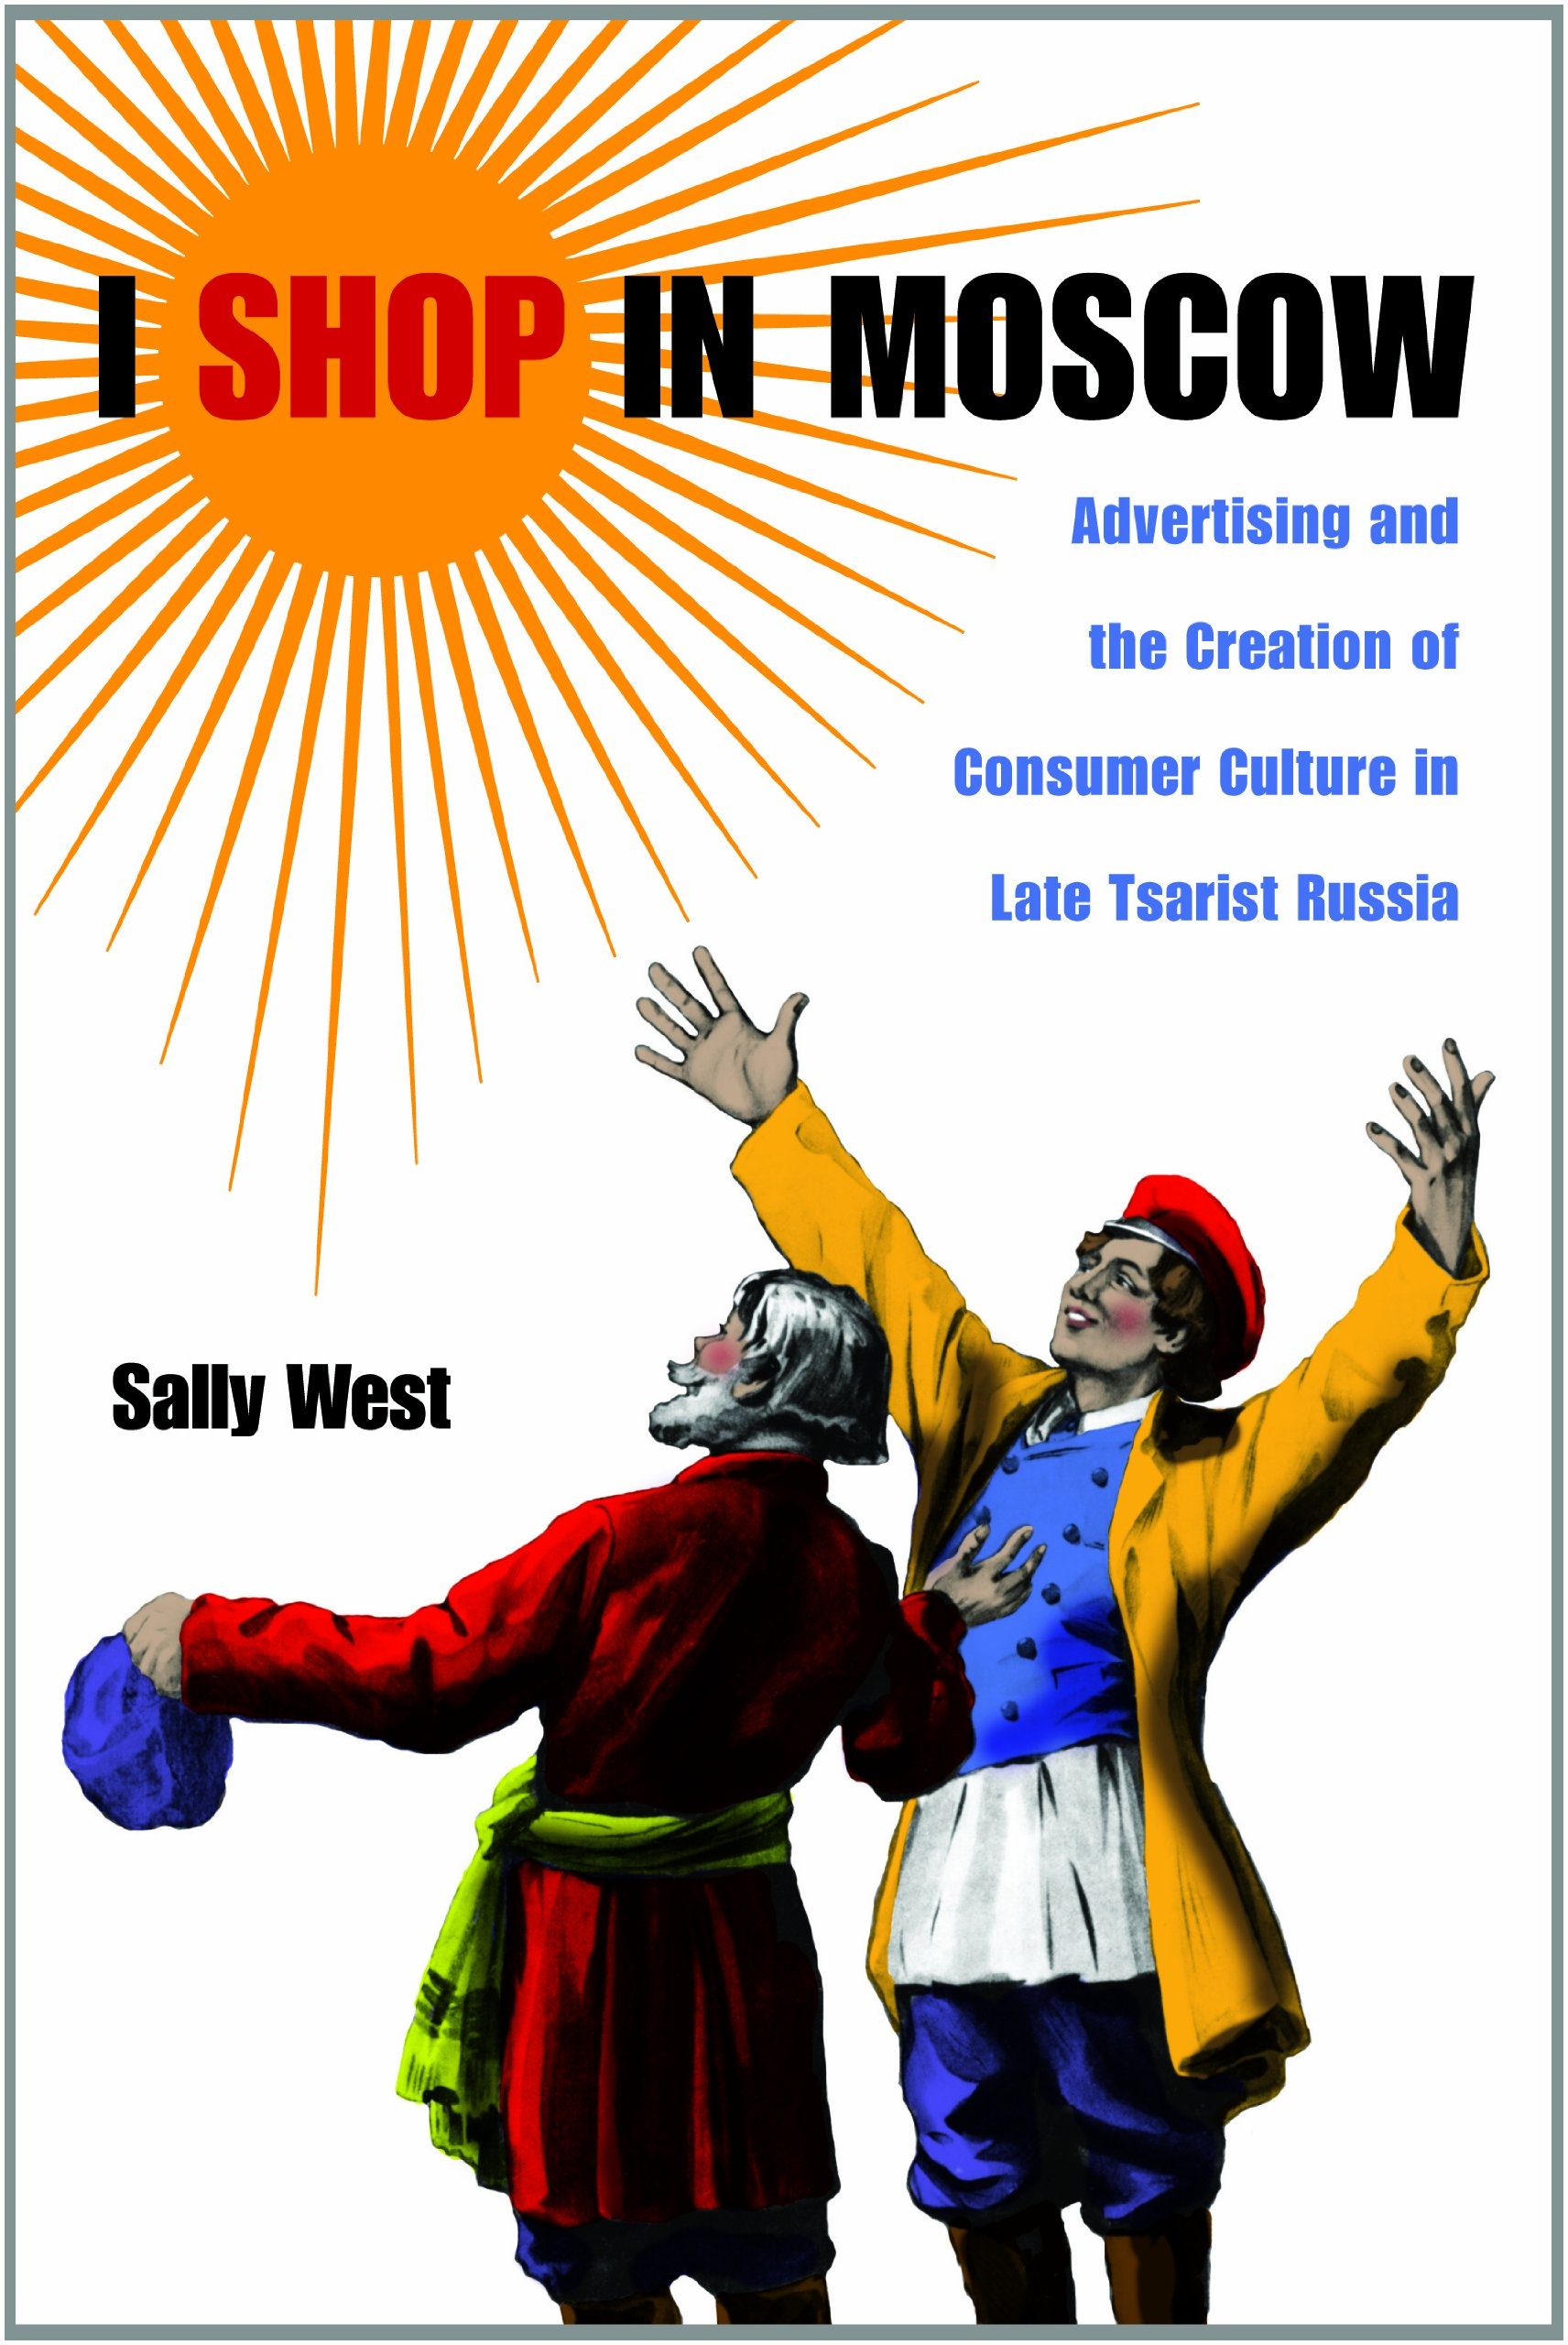 I Shop in Moscow: Advertising and the Creation of Consumer Culture in Late Tsarist Russia pdf